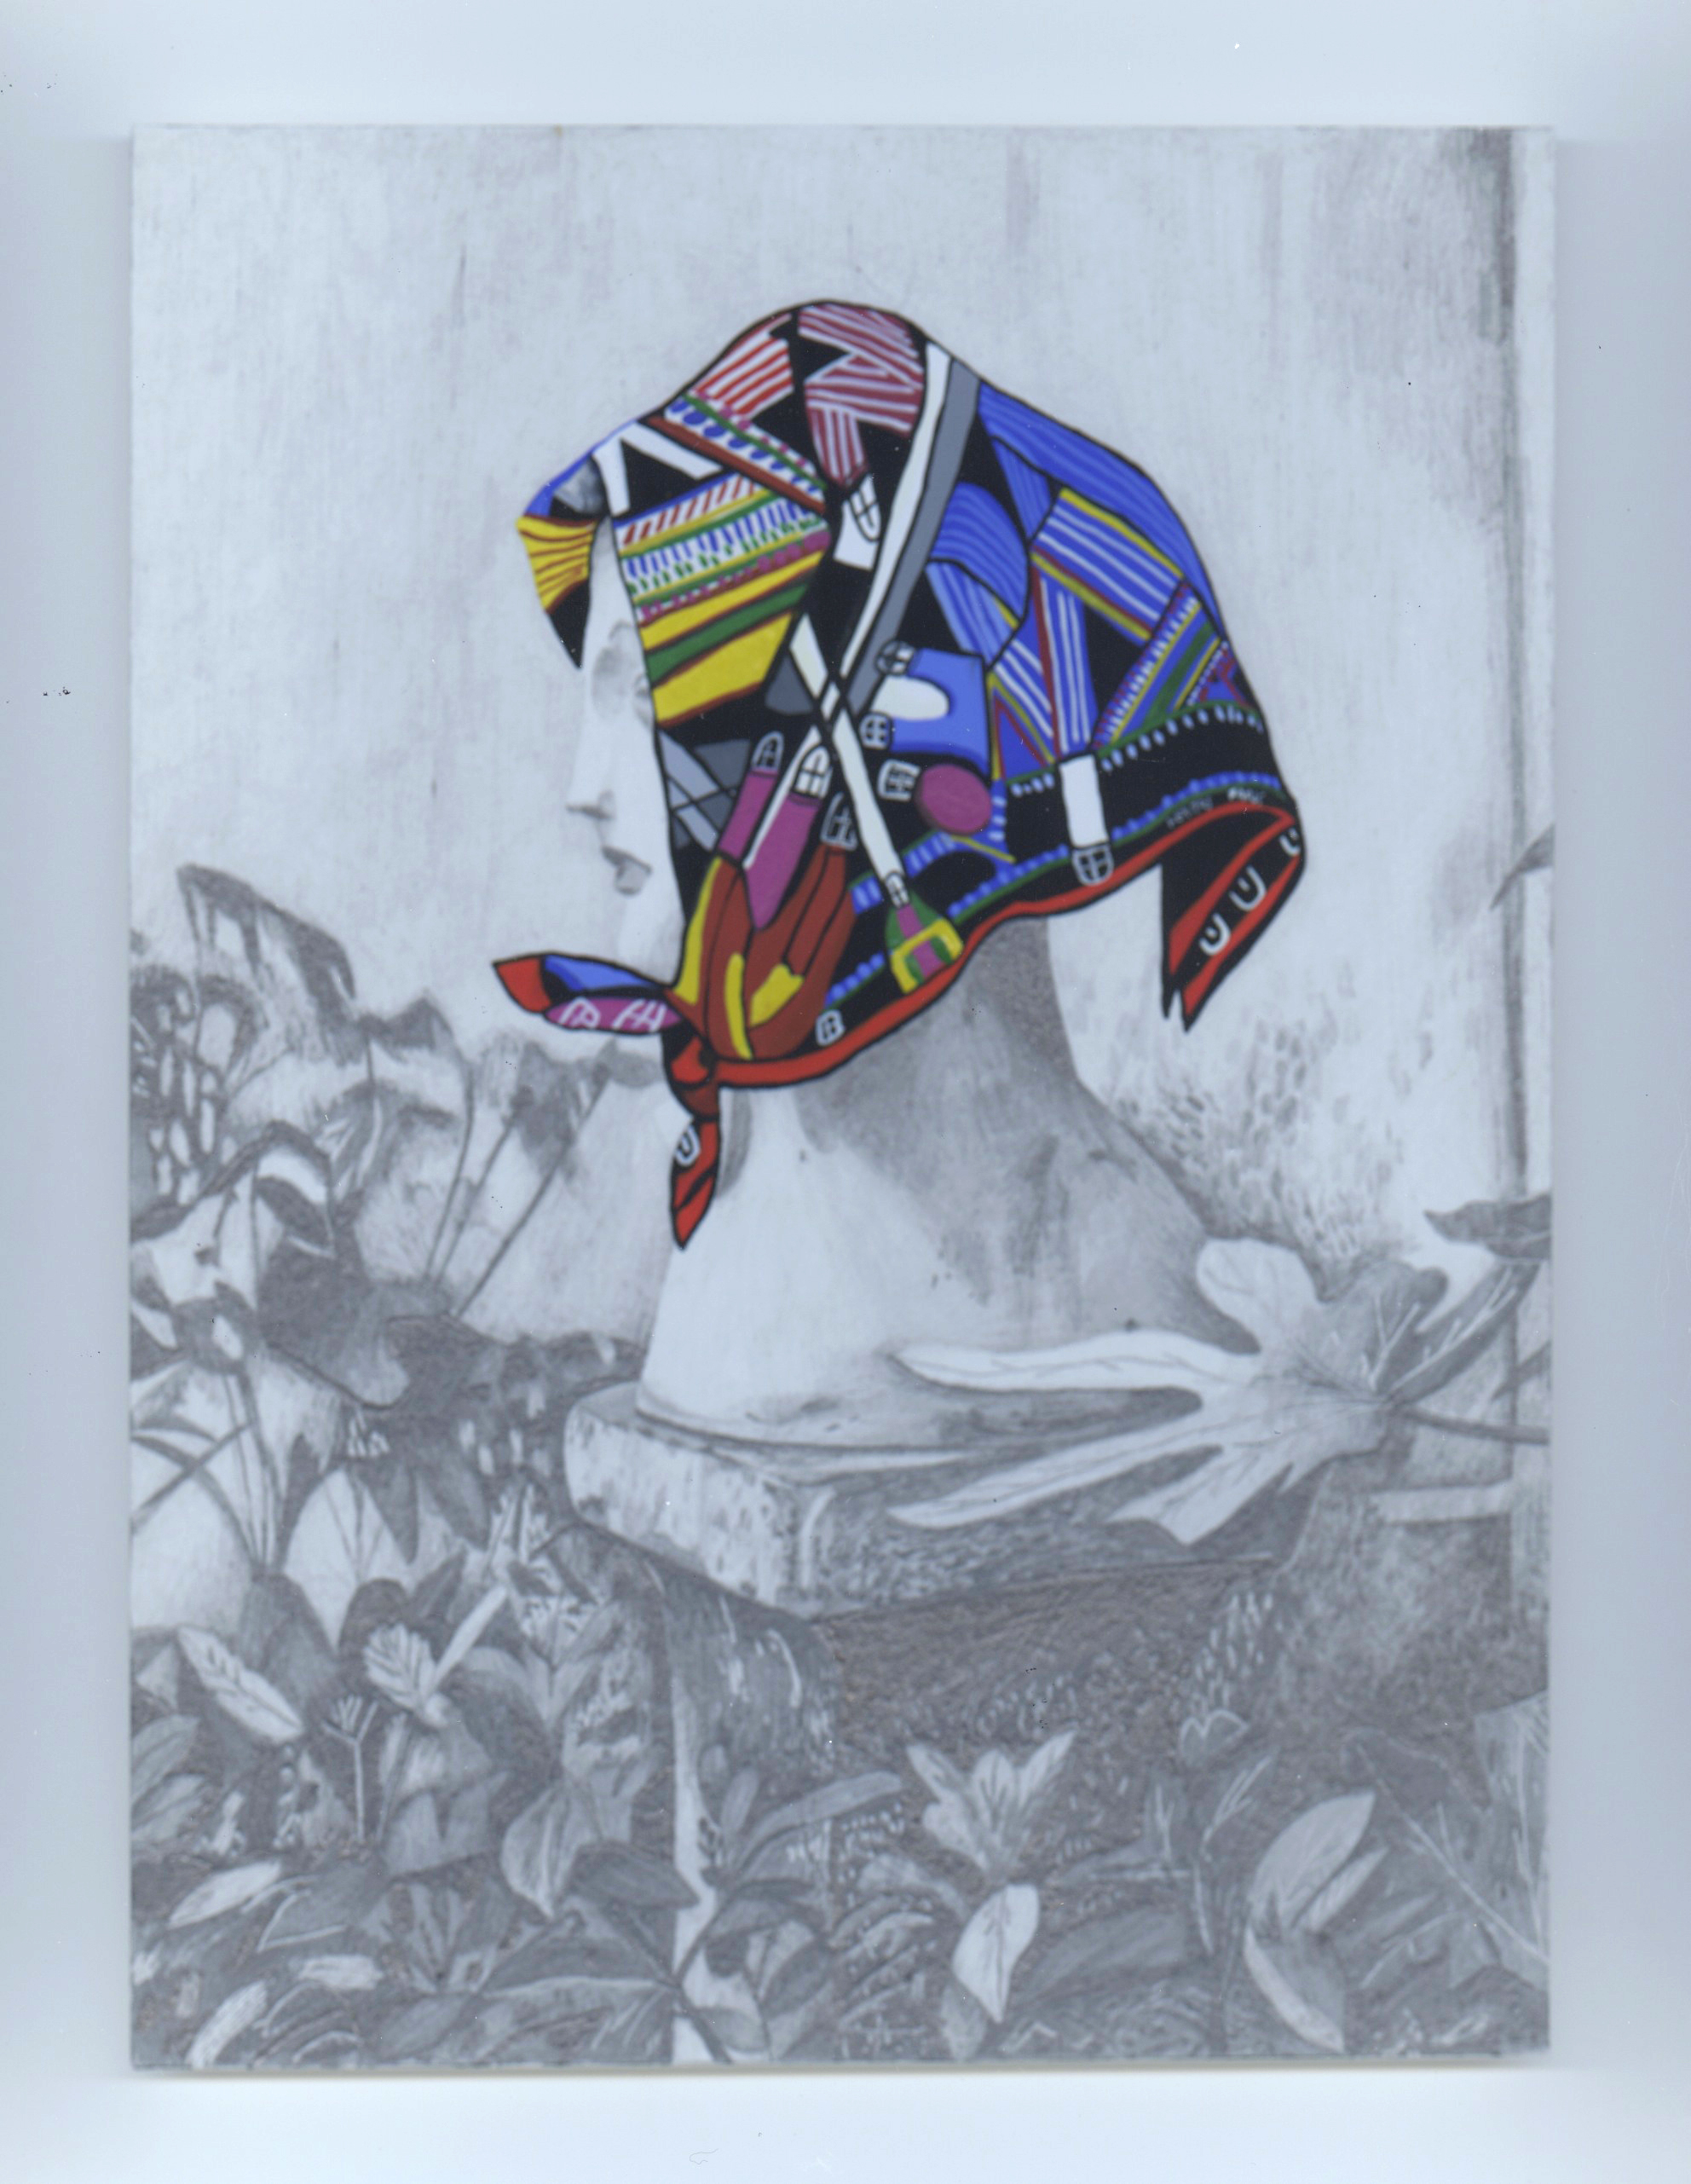 """Libby Black, """"Side View of Statue with Hermes Scarf, pencil on paper, 7 1/2 x 6 in, 2017"""